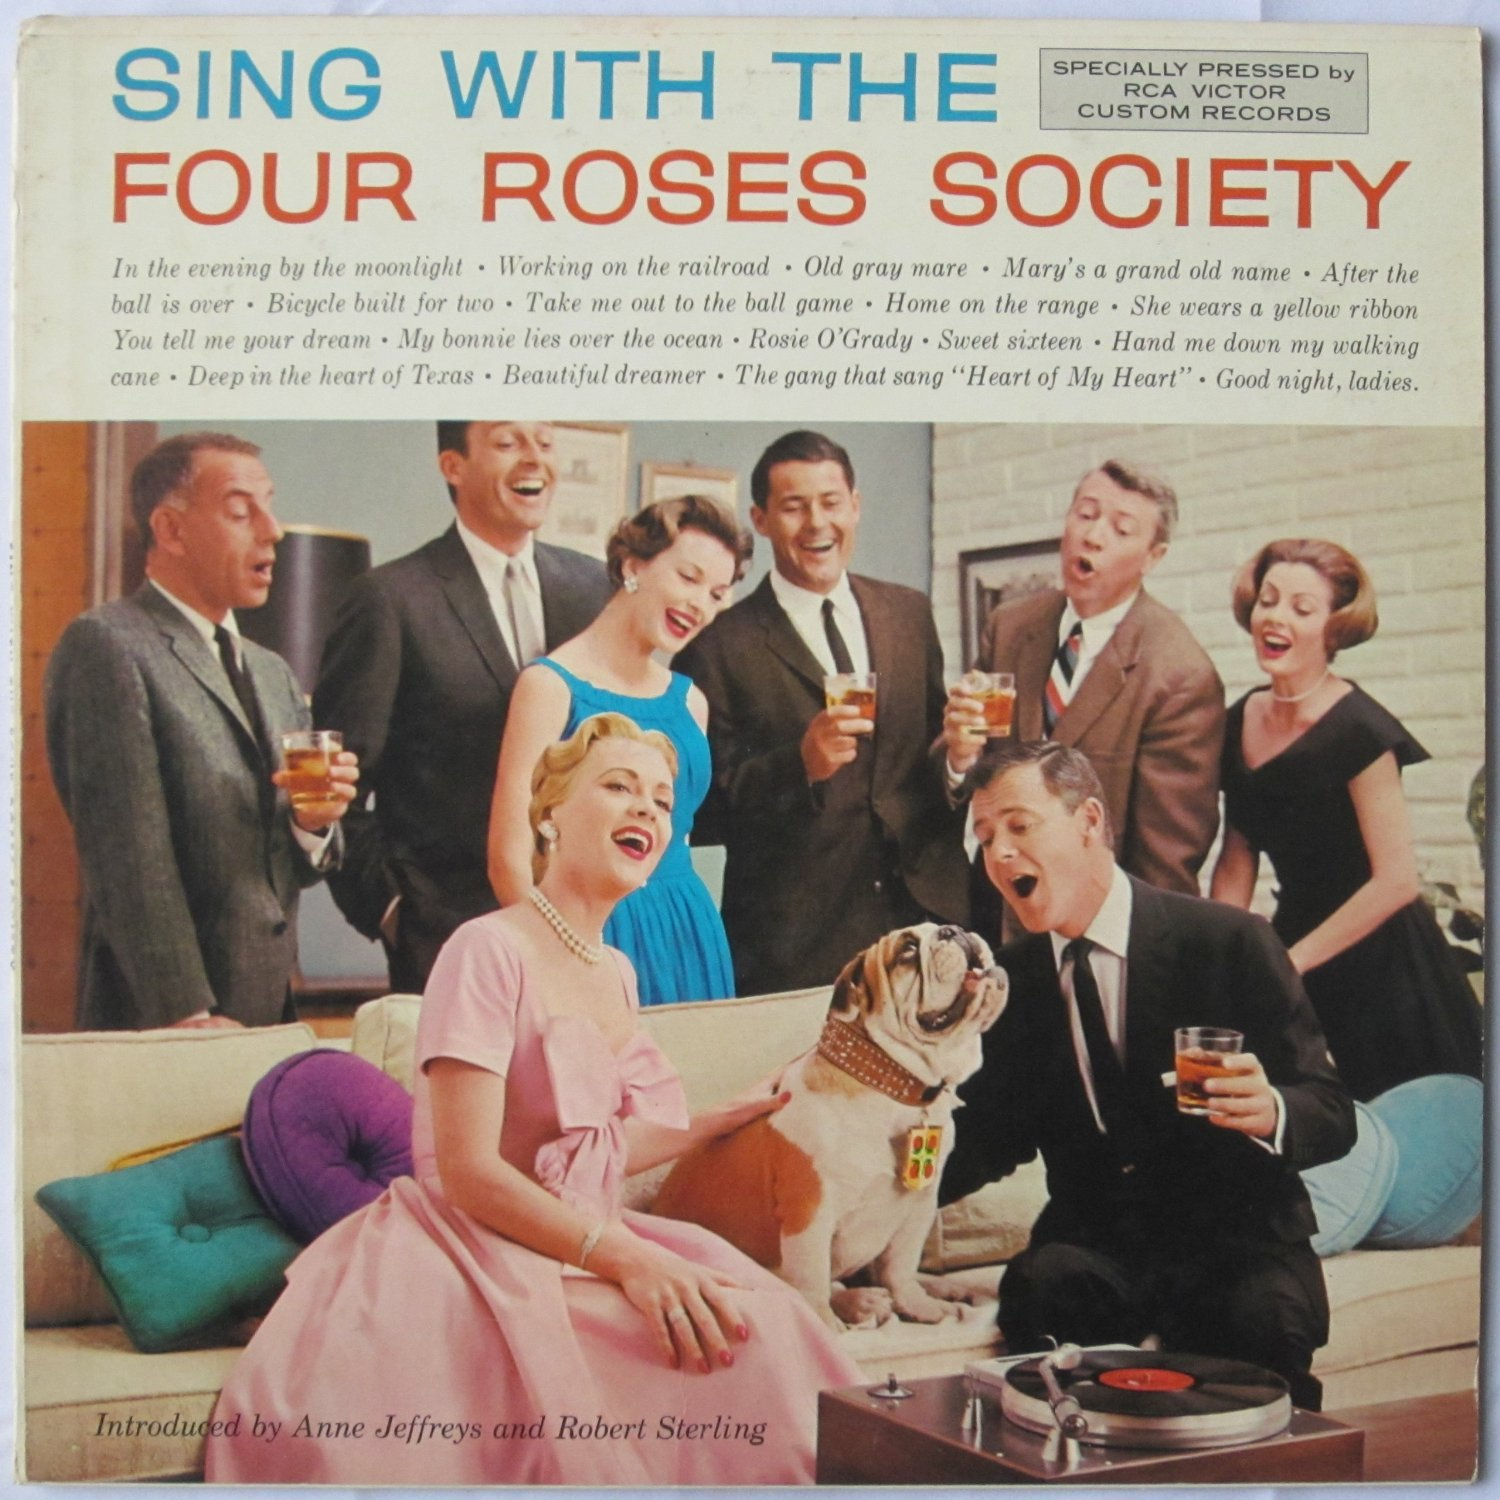 Sing With the Four Roses Society (Vinyl record 1958)